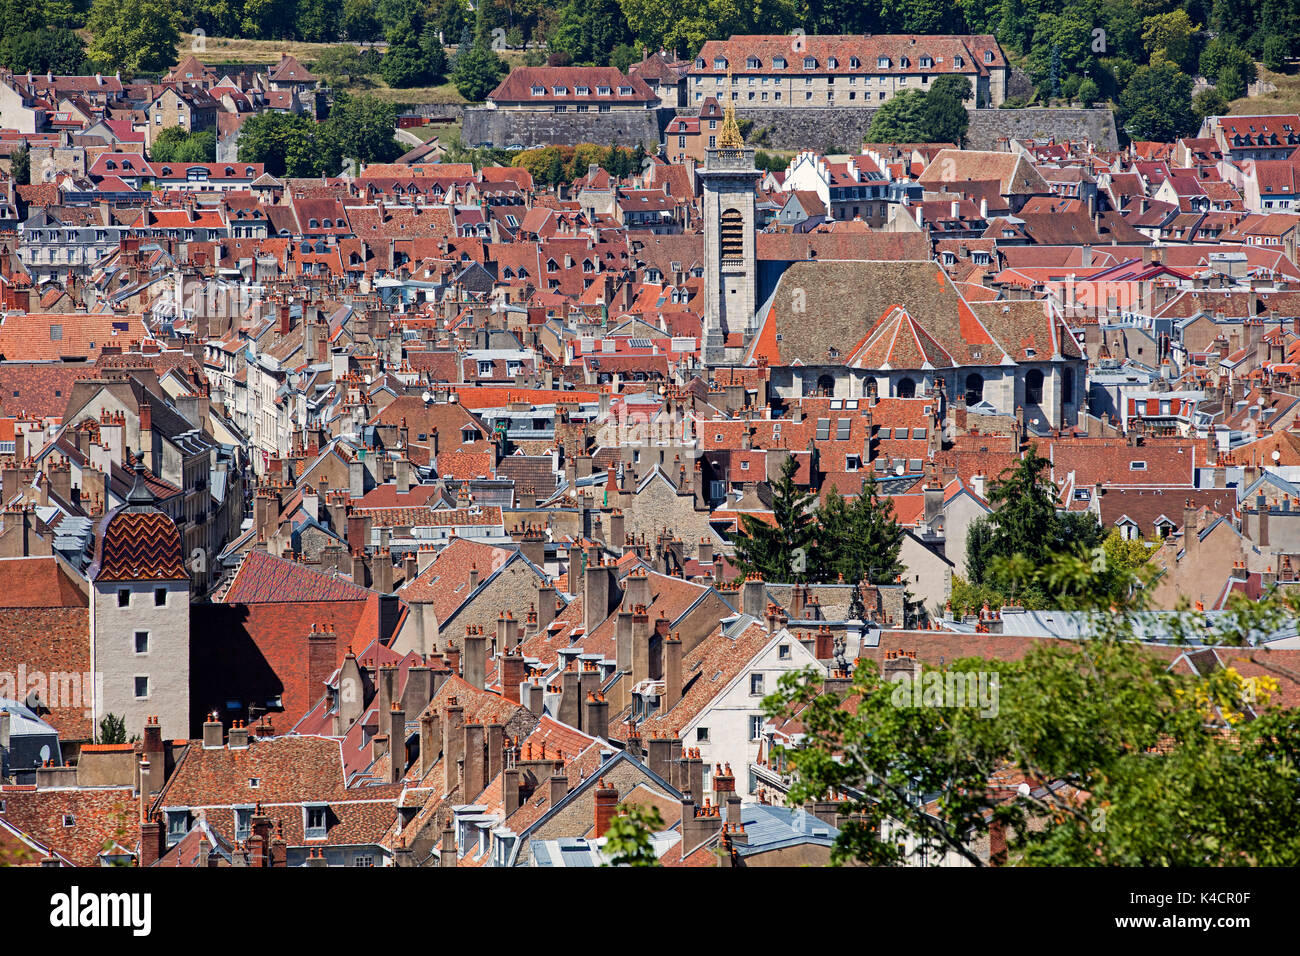 Bird's eye view over the old city and the église Saint-Pierre / St Peter's church of Besançon, Doubs, Bourgogne-Franche-Comté, France - Stock Image